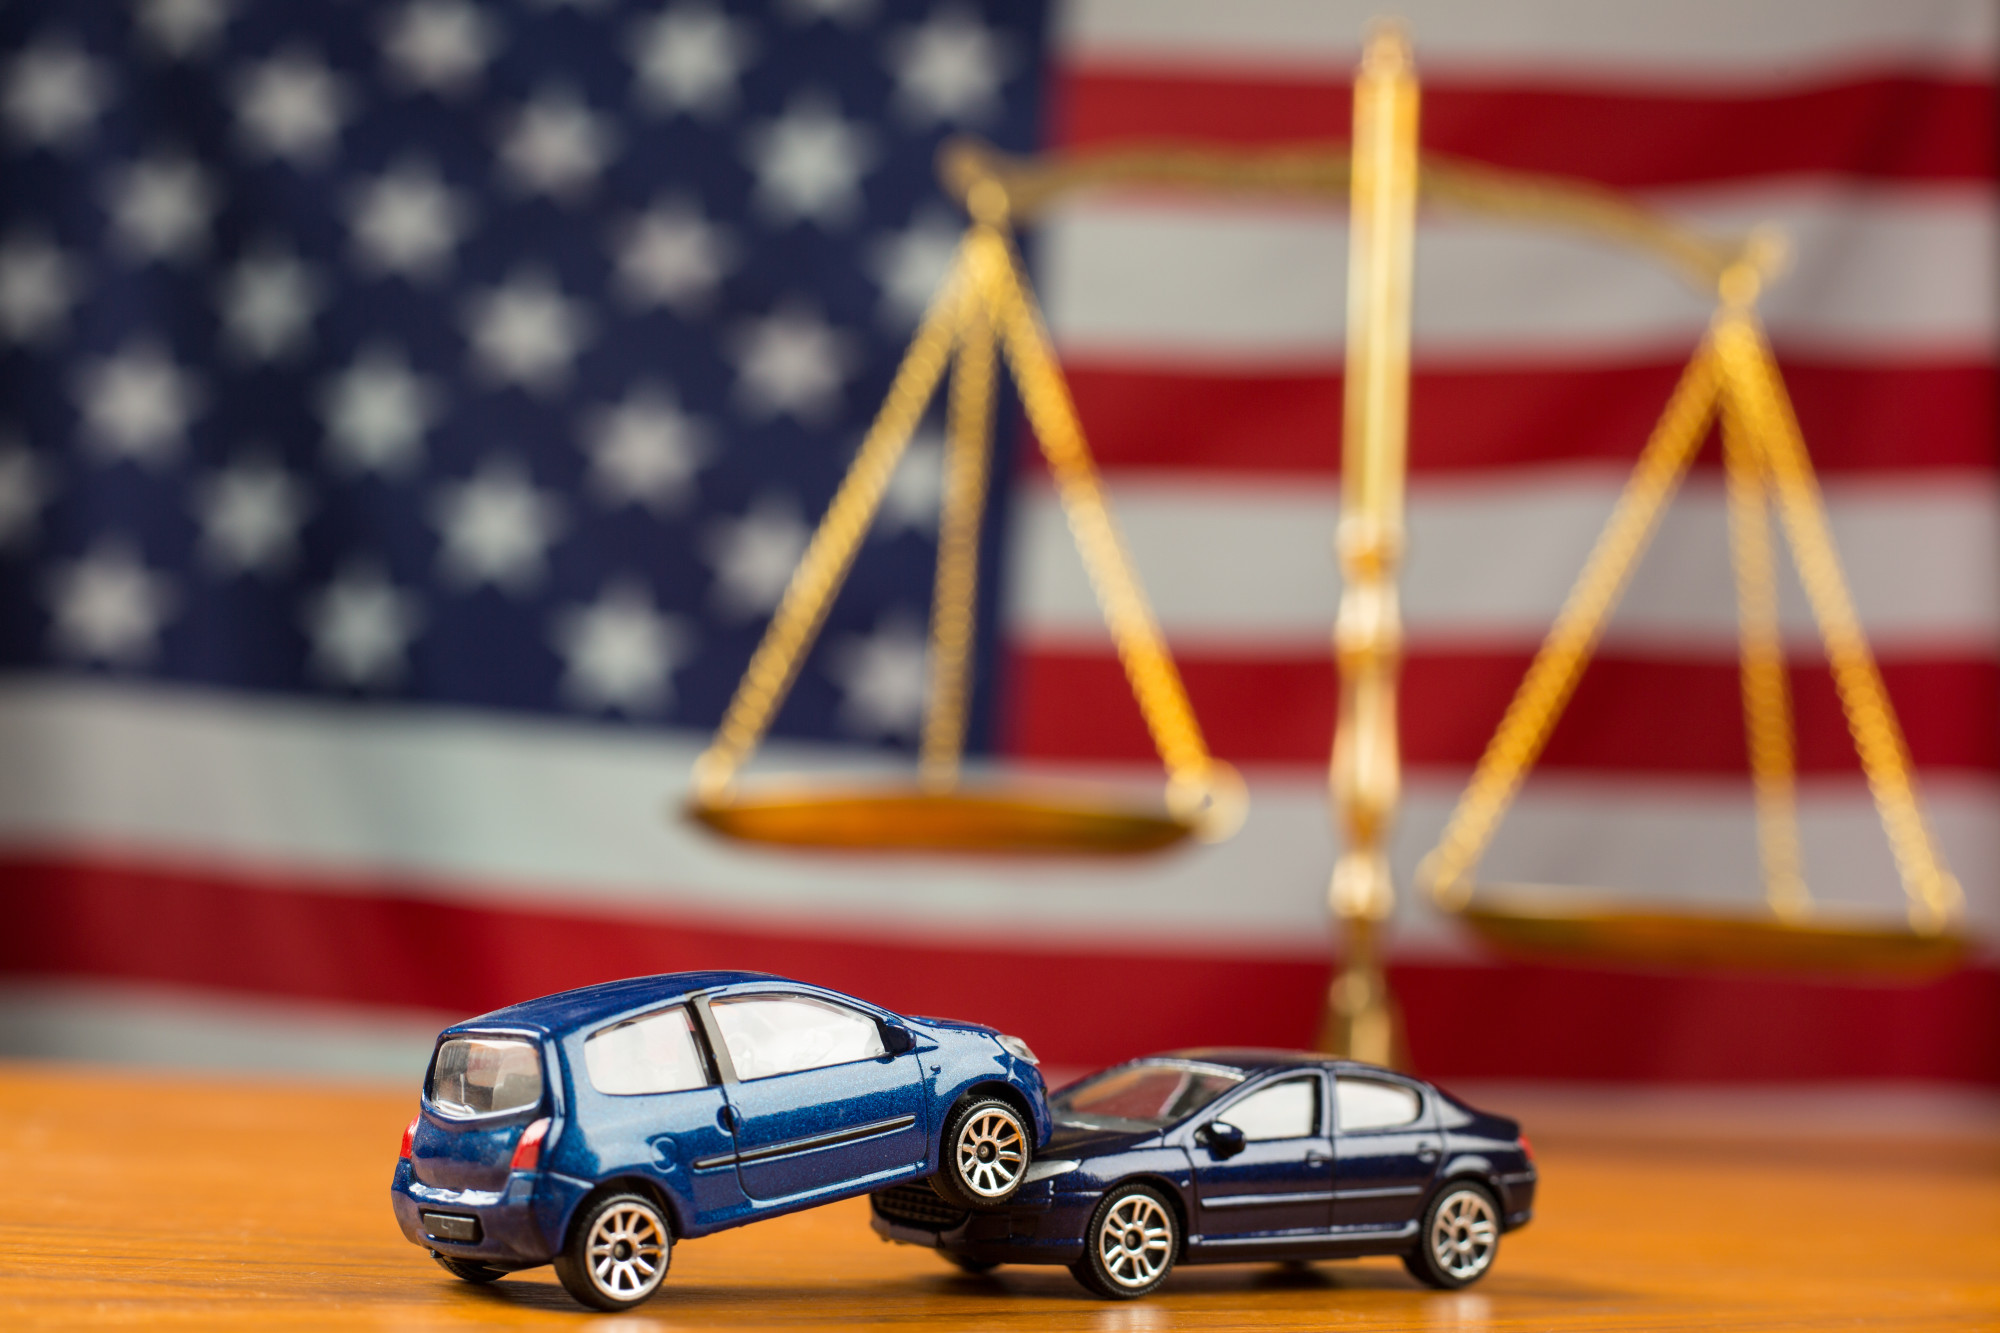 3 Reasons to Hire a Lawyer After an Accident